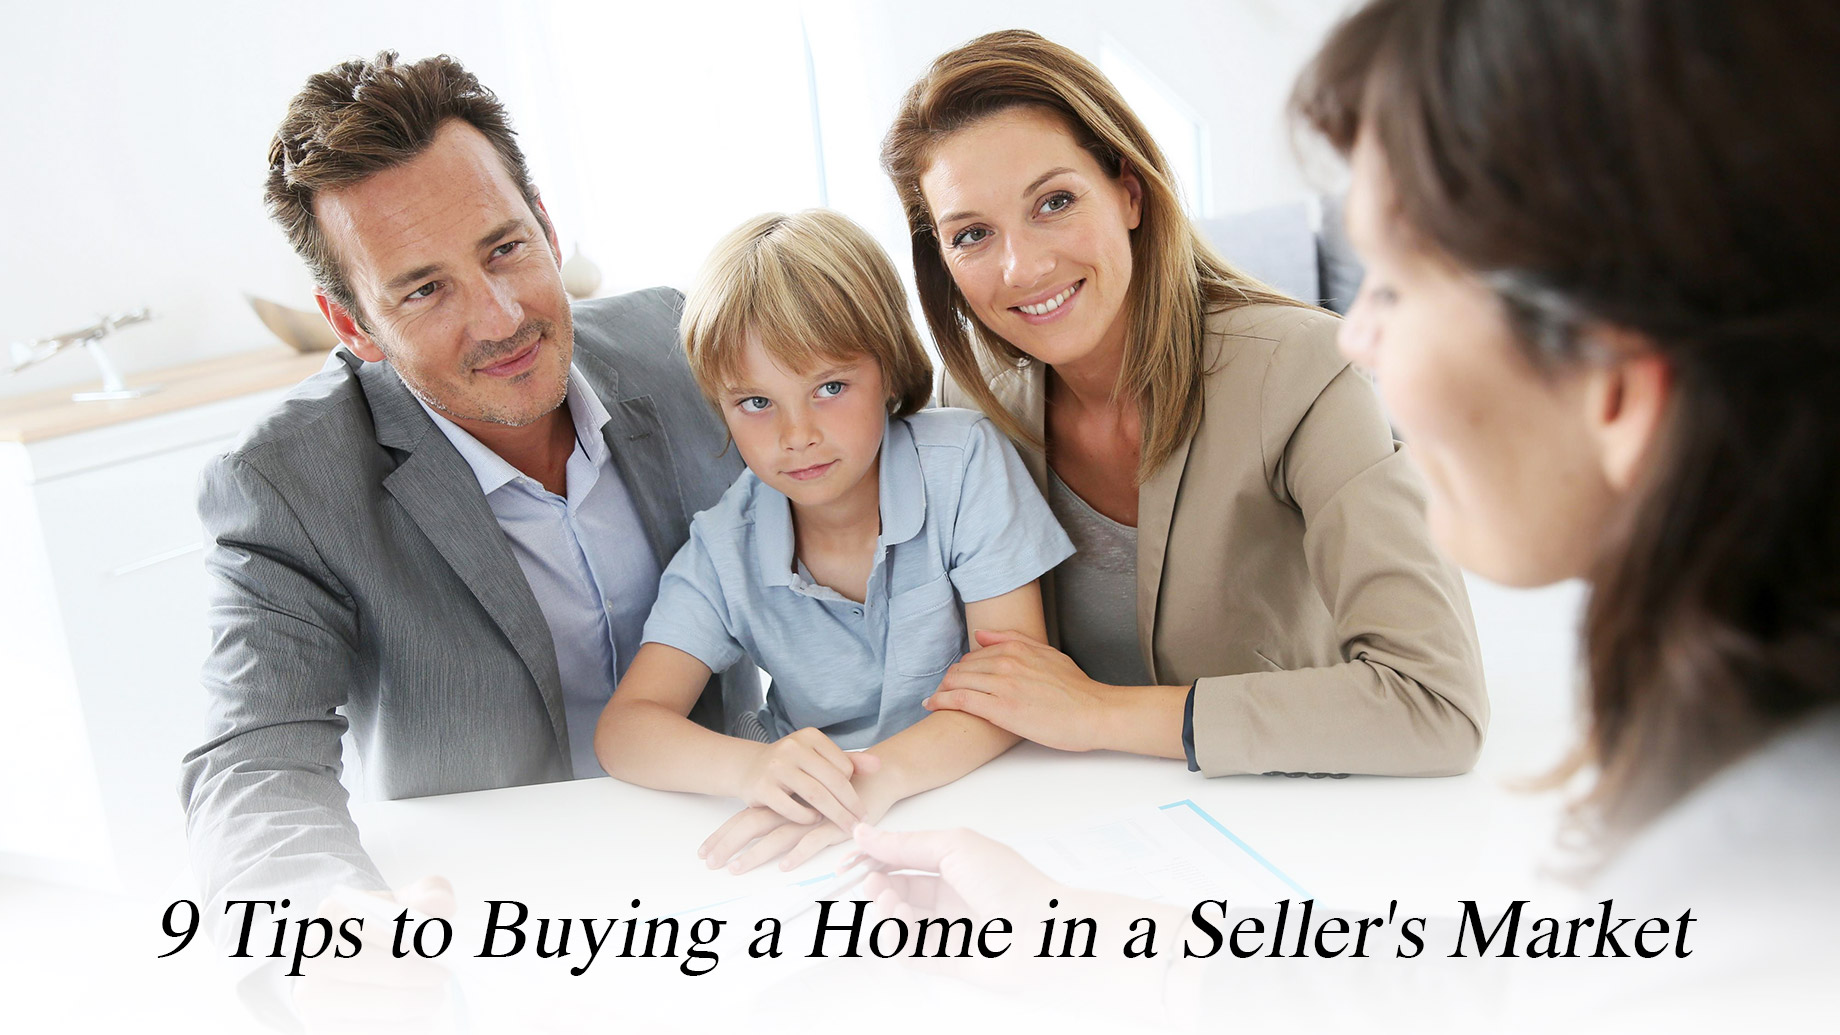 9 Tips to Buying a Home in a Seller's Market